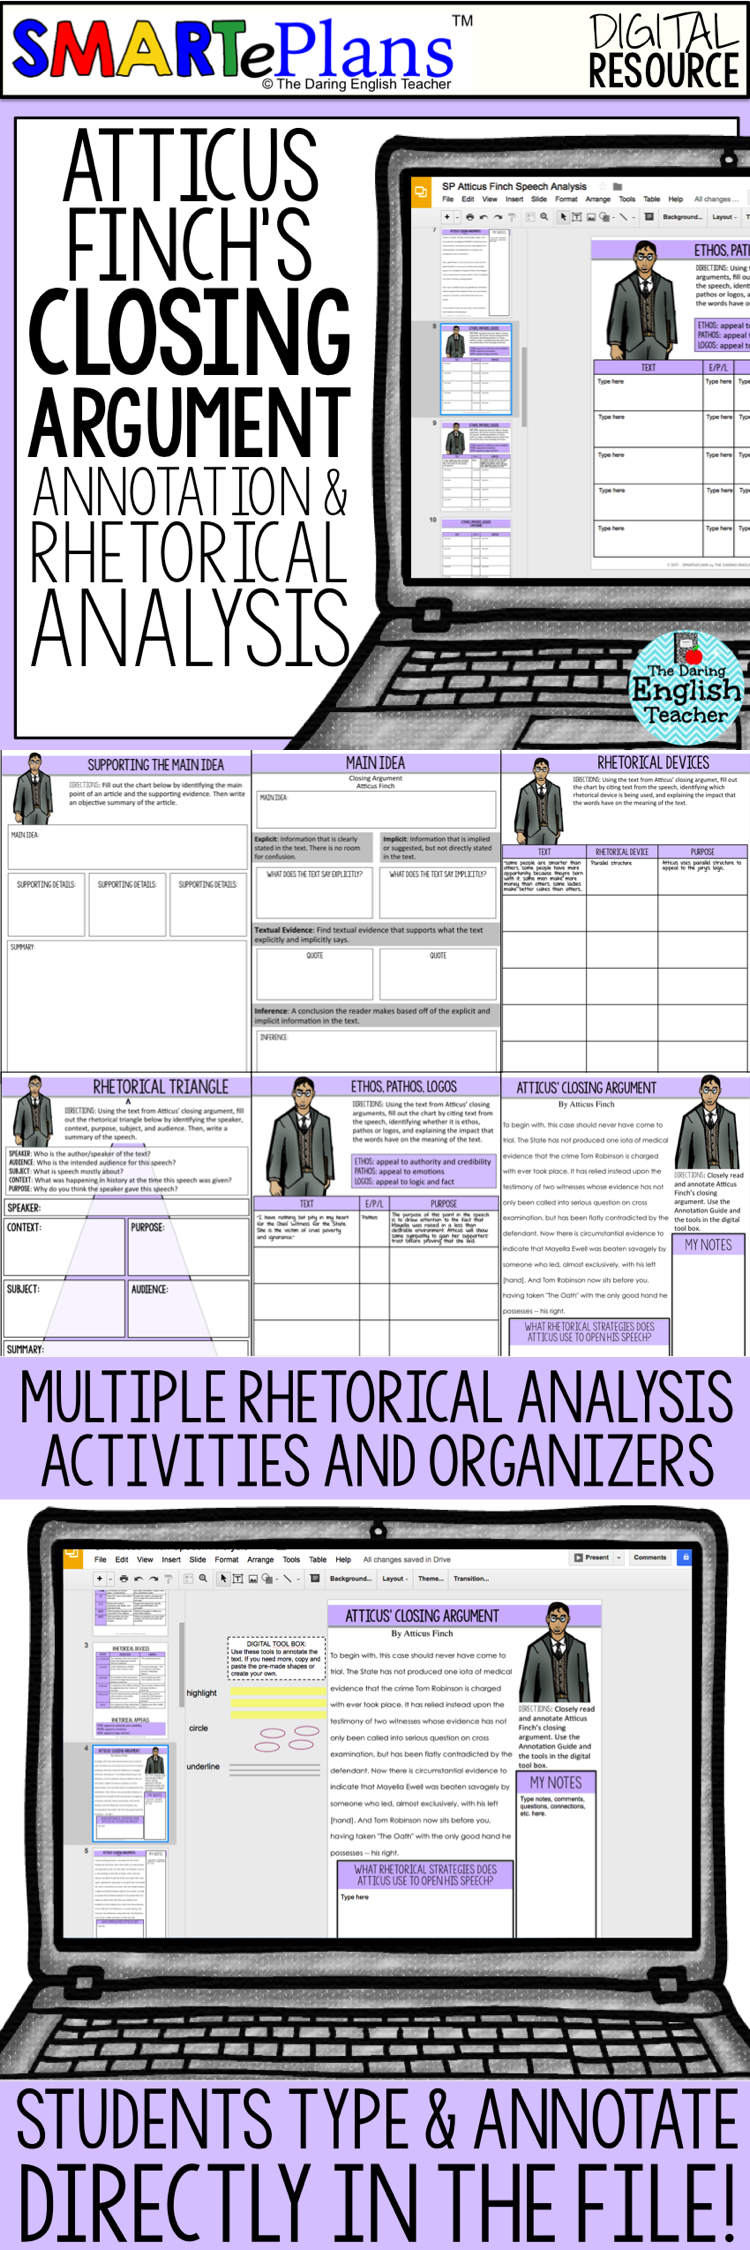 kill mockingbird atticus speech analysis For to kill a mockingbird, a character map helps students remember the characters, and their interactions with scout, jem and atticus many of the characters in the novel are dynamic, changing over the course of the book.